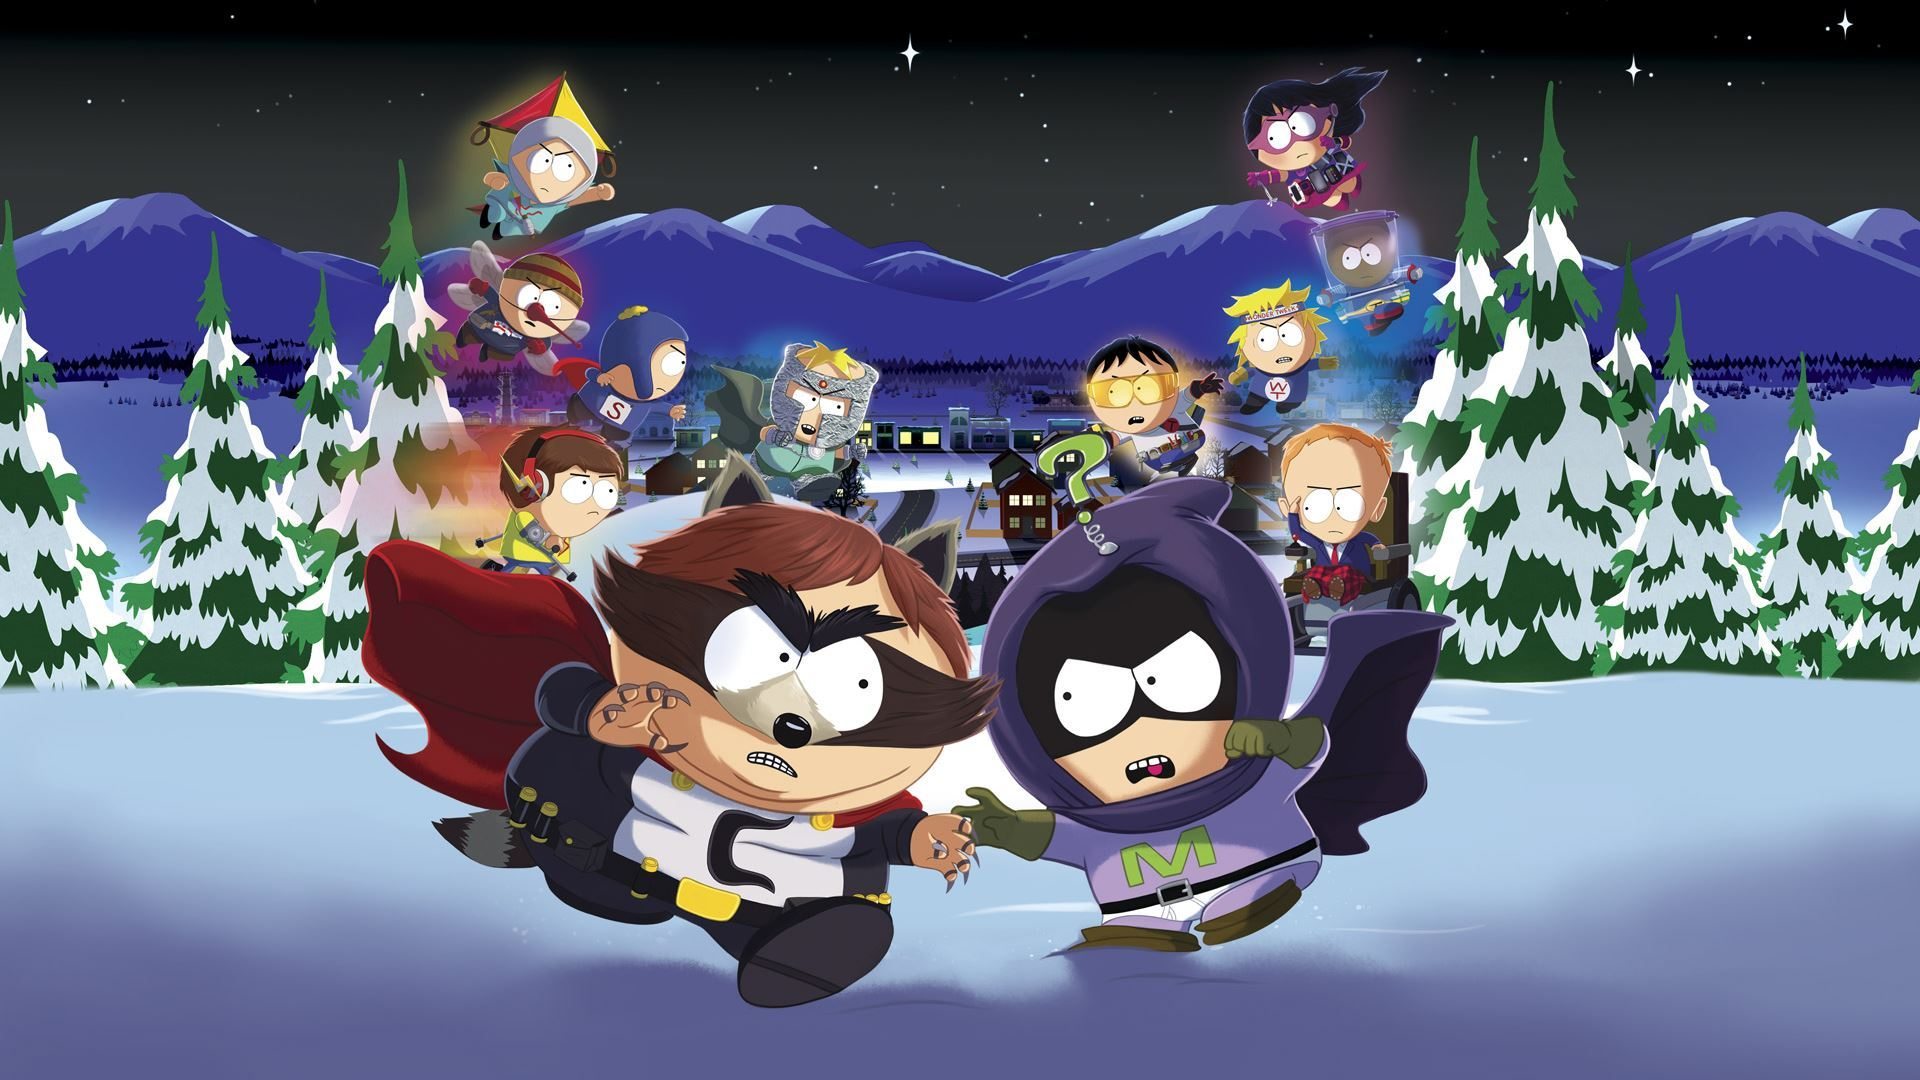 South park the fractured but whole системные требования